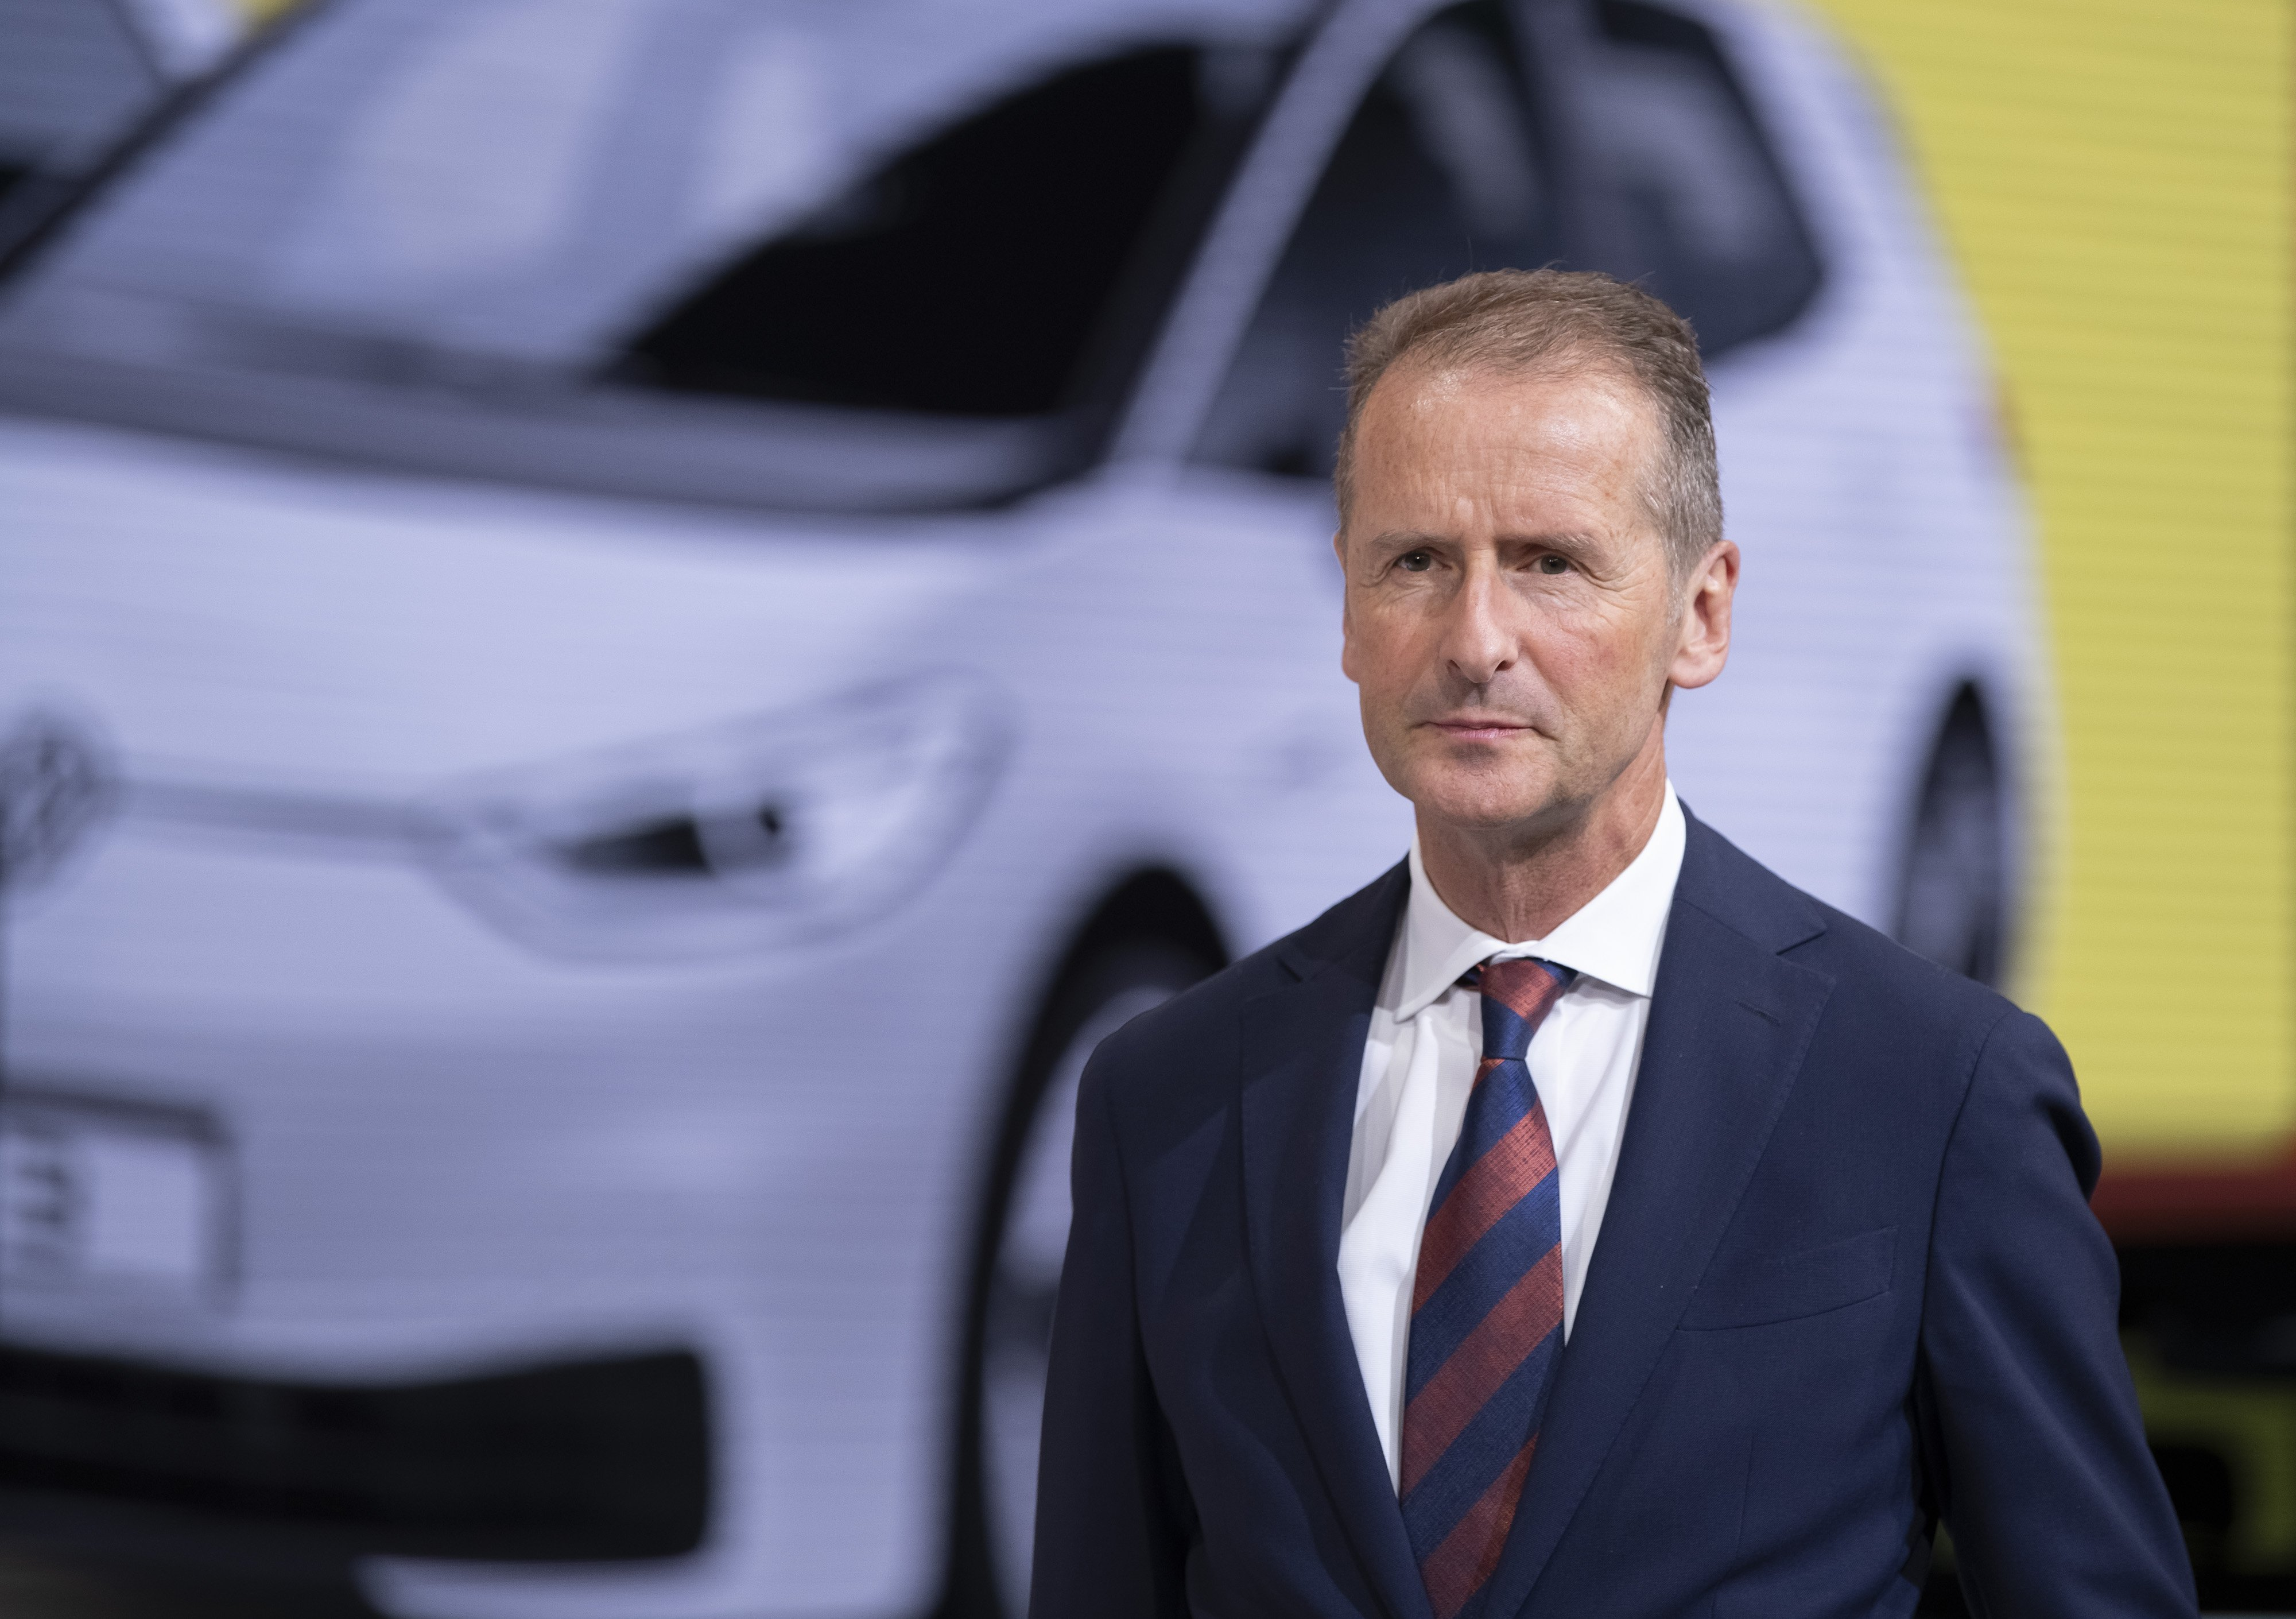 Volkswagen's CEO and chairman charged in Germany over diesel emissions scandal